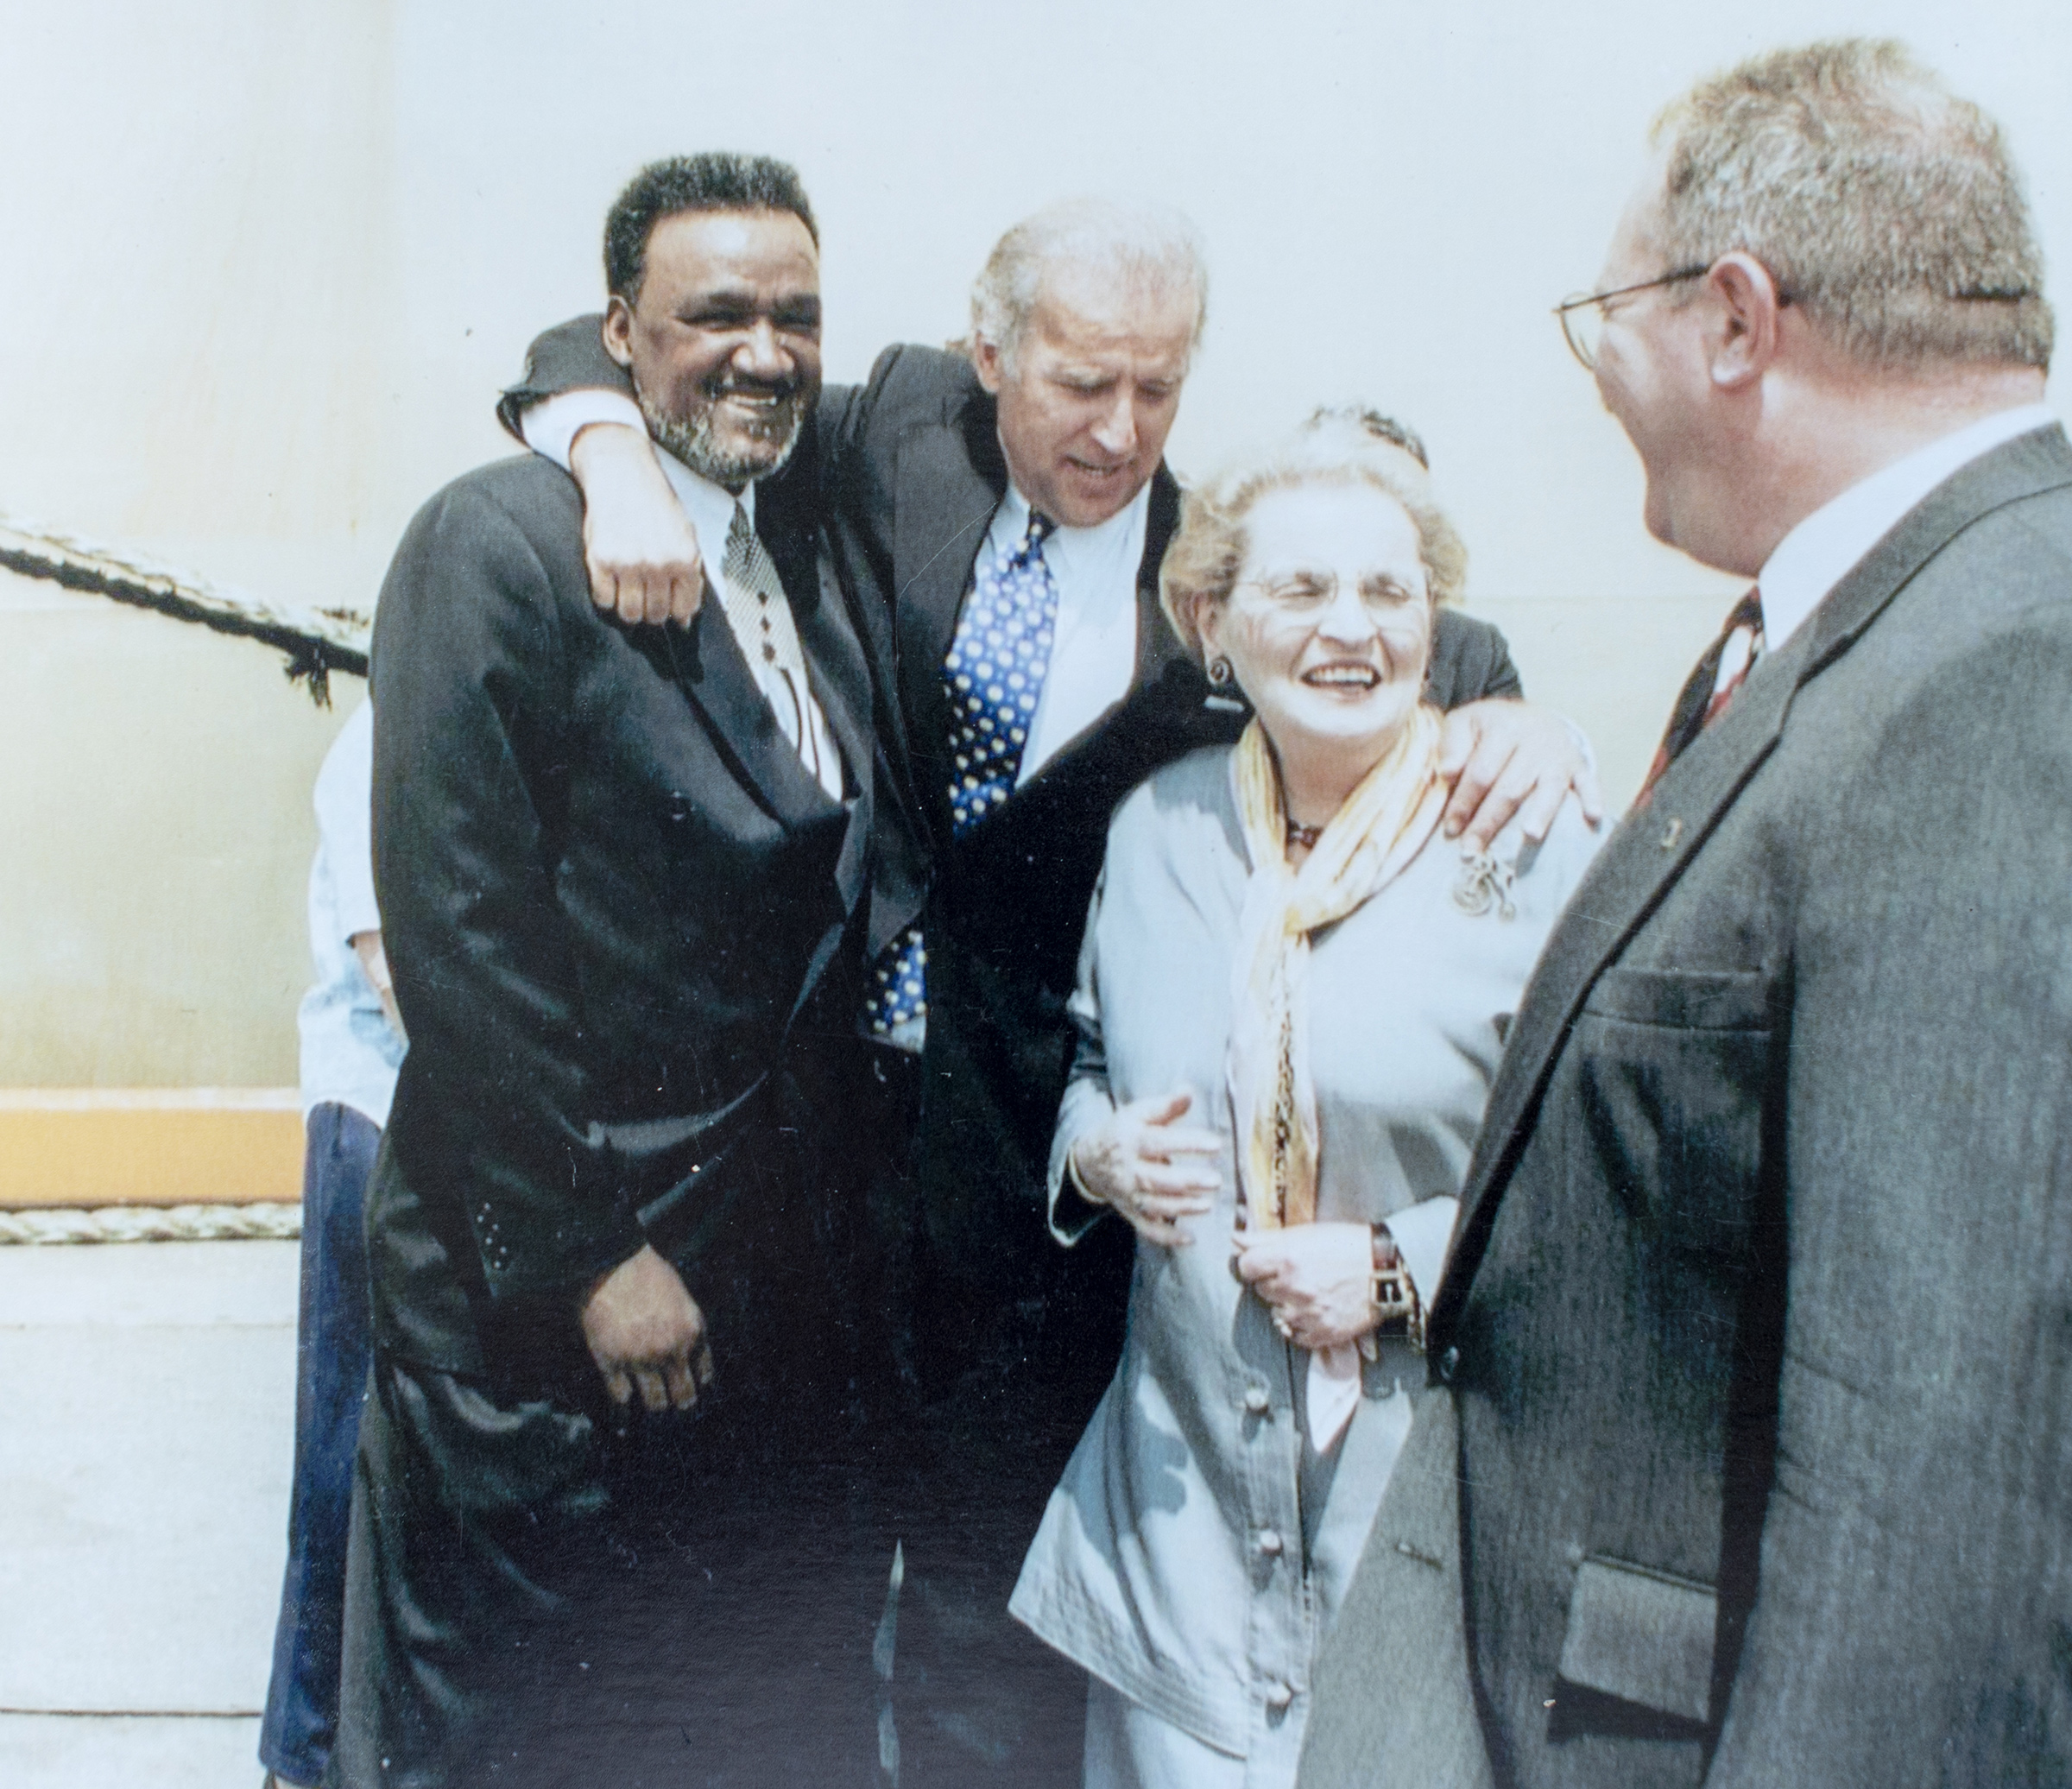 Richard  Mouse  Smith, left, with President Joe Biden, Madeleine Albright and Adam McBride sometime in the mid '90's. Smith is a Civil Rights leader in Delaware who has been friends with Biden since they were both young and when Biden was a lifeguard at the pool in Smith's neighborhood. Biden was best man at his wedding.